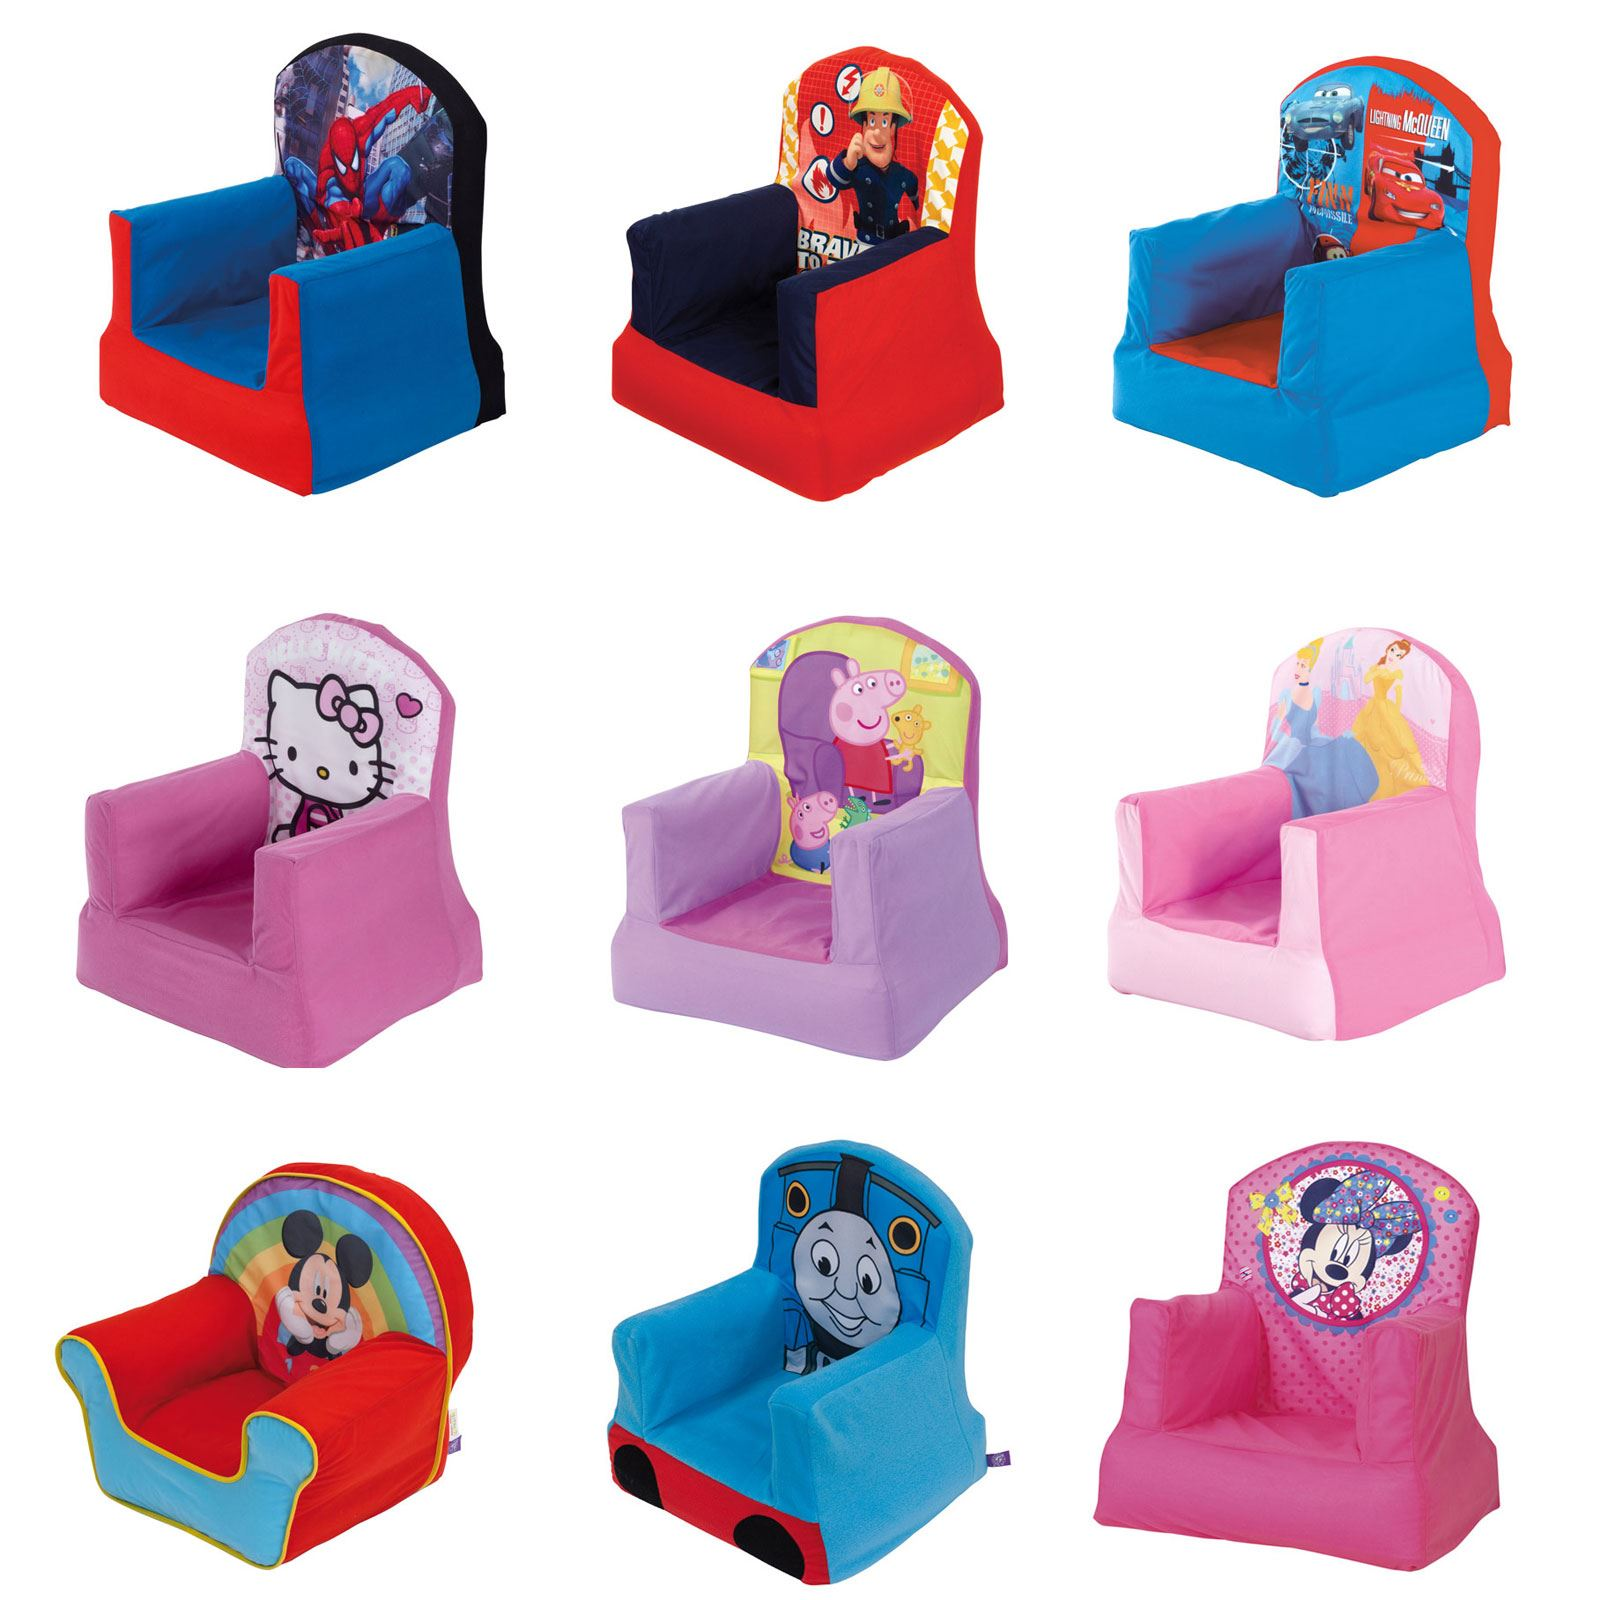 OFFICIAL DISNEY AND CHARACTER CHILDRENS COSY CHAIRS INFLATABLE BEDROOM  FURNITURE. OFFICIAL DISNEY AND CHARACTER CHILDRENS COSY CHAIRS INFLATABLE